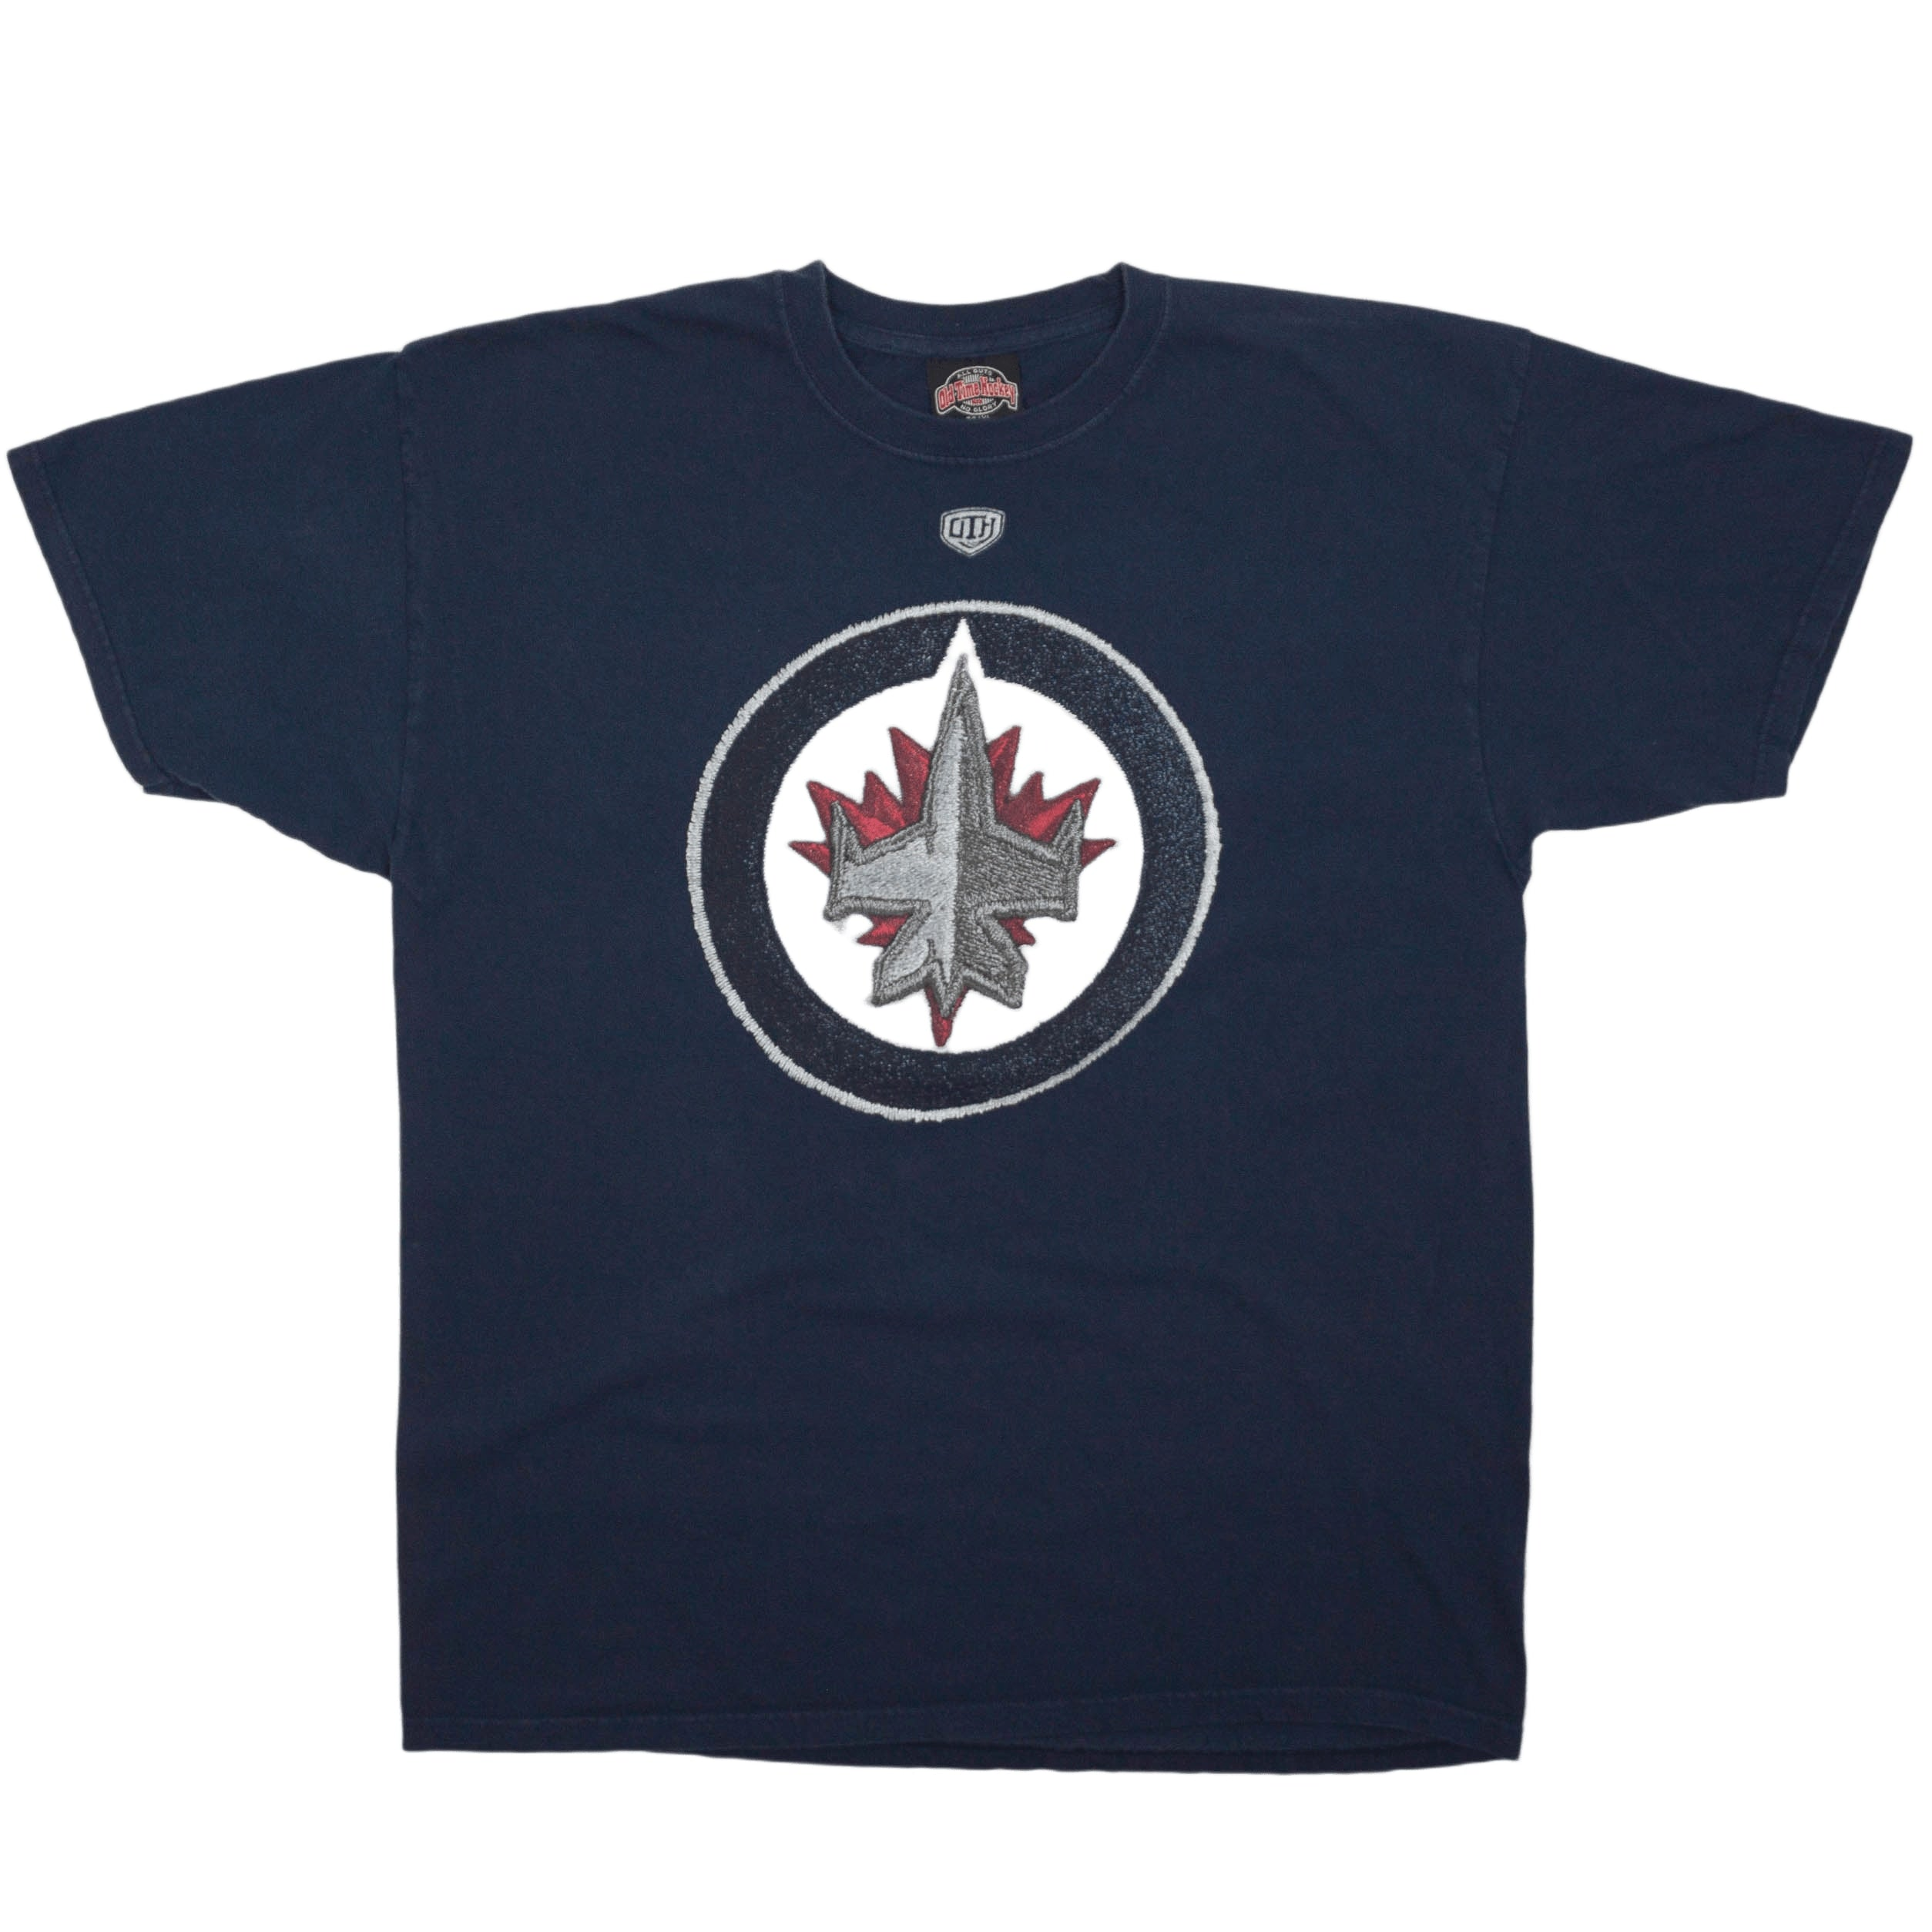 Vintage Old Time Hockey T-shirt